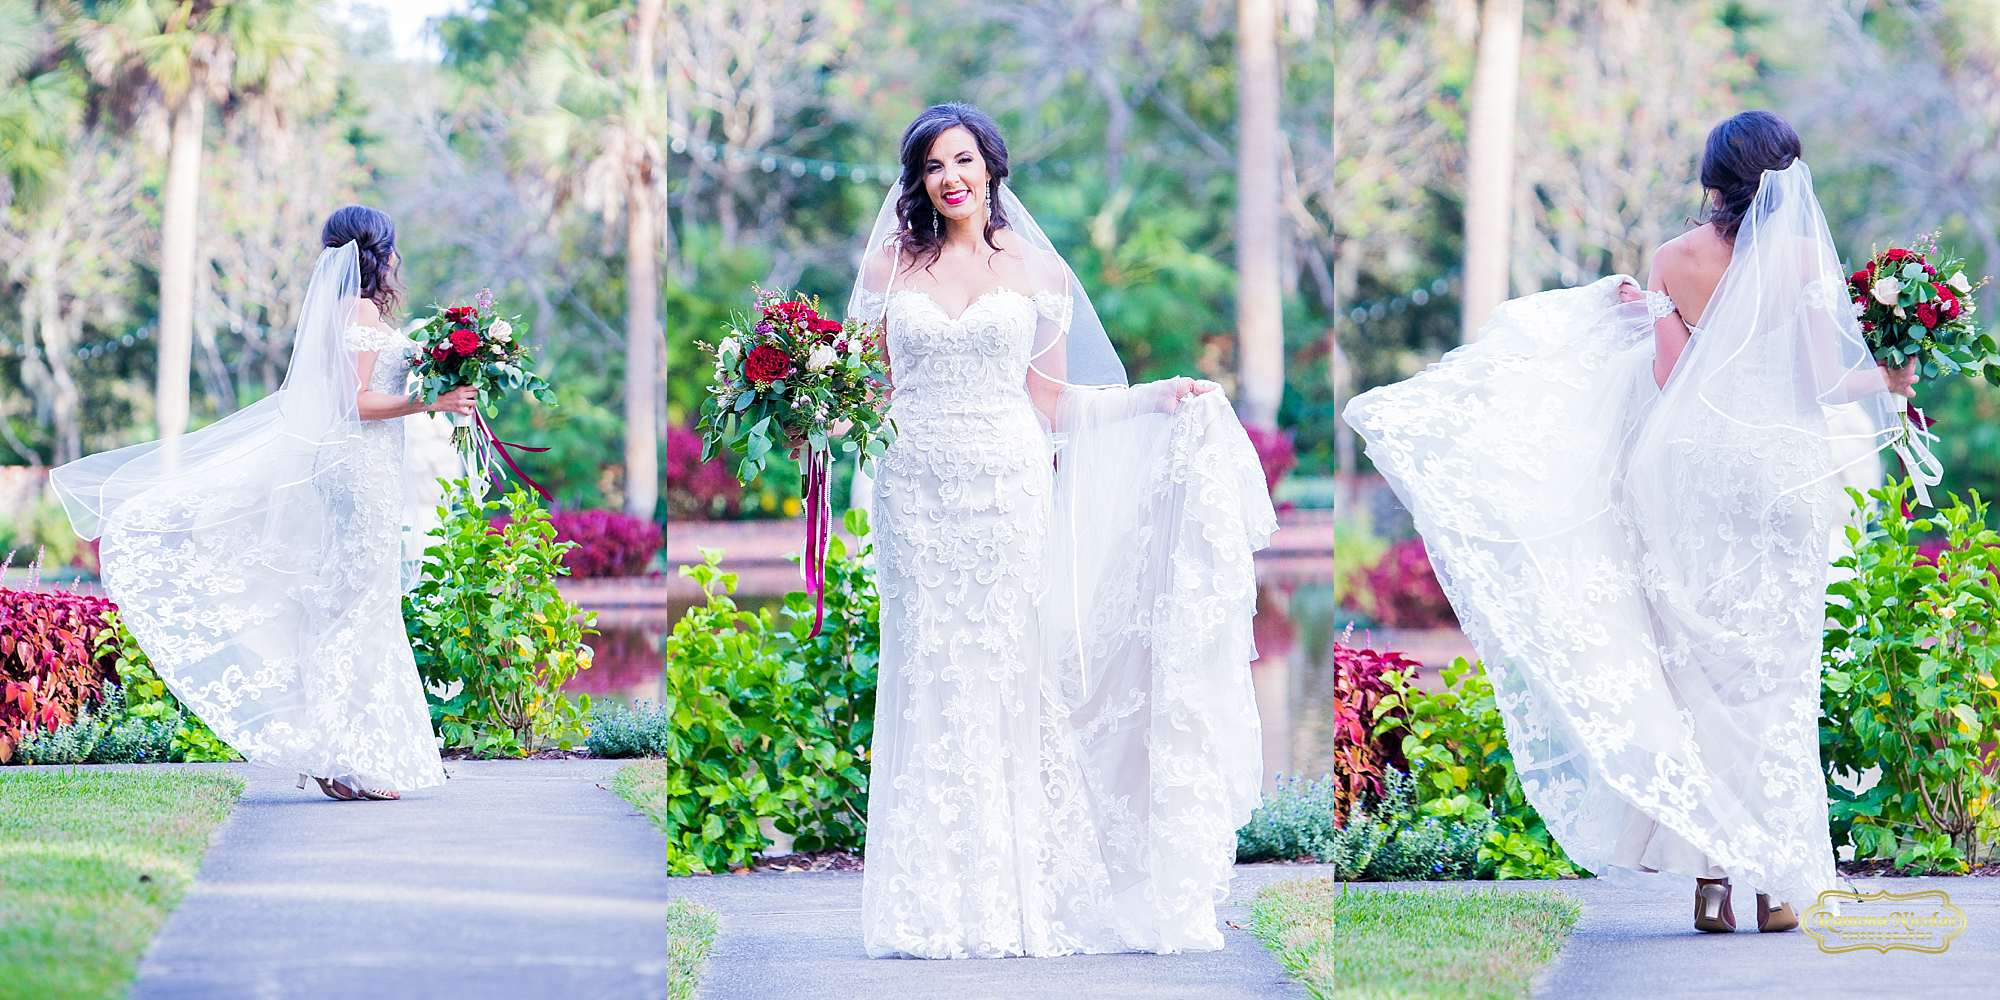 bride smiling and twirling spinning with red flowers and veil at brookgreen gardens during bridal session with ramona nicolae photography myrtle beach wedding photographer-3.jpg